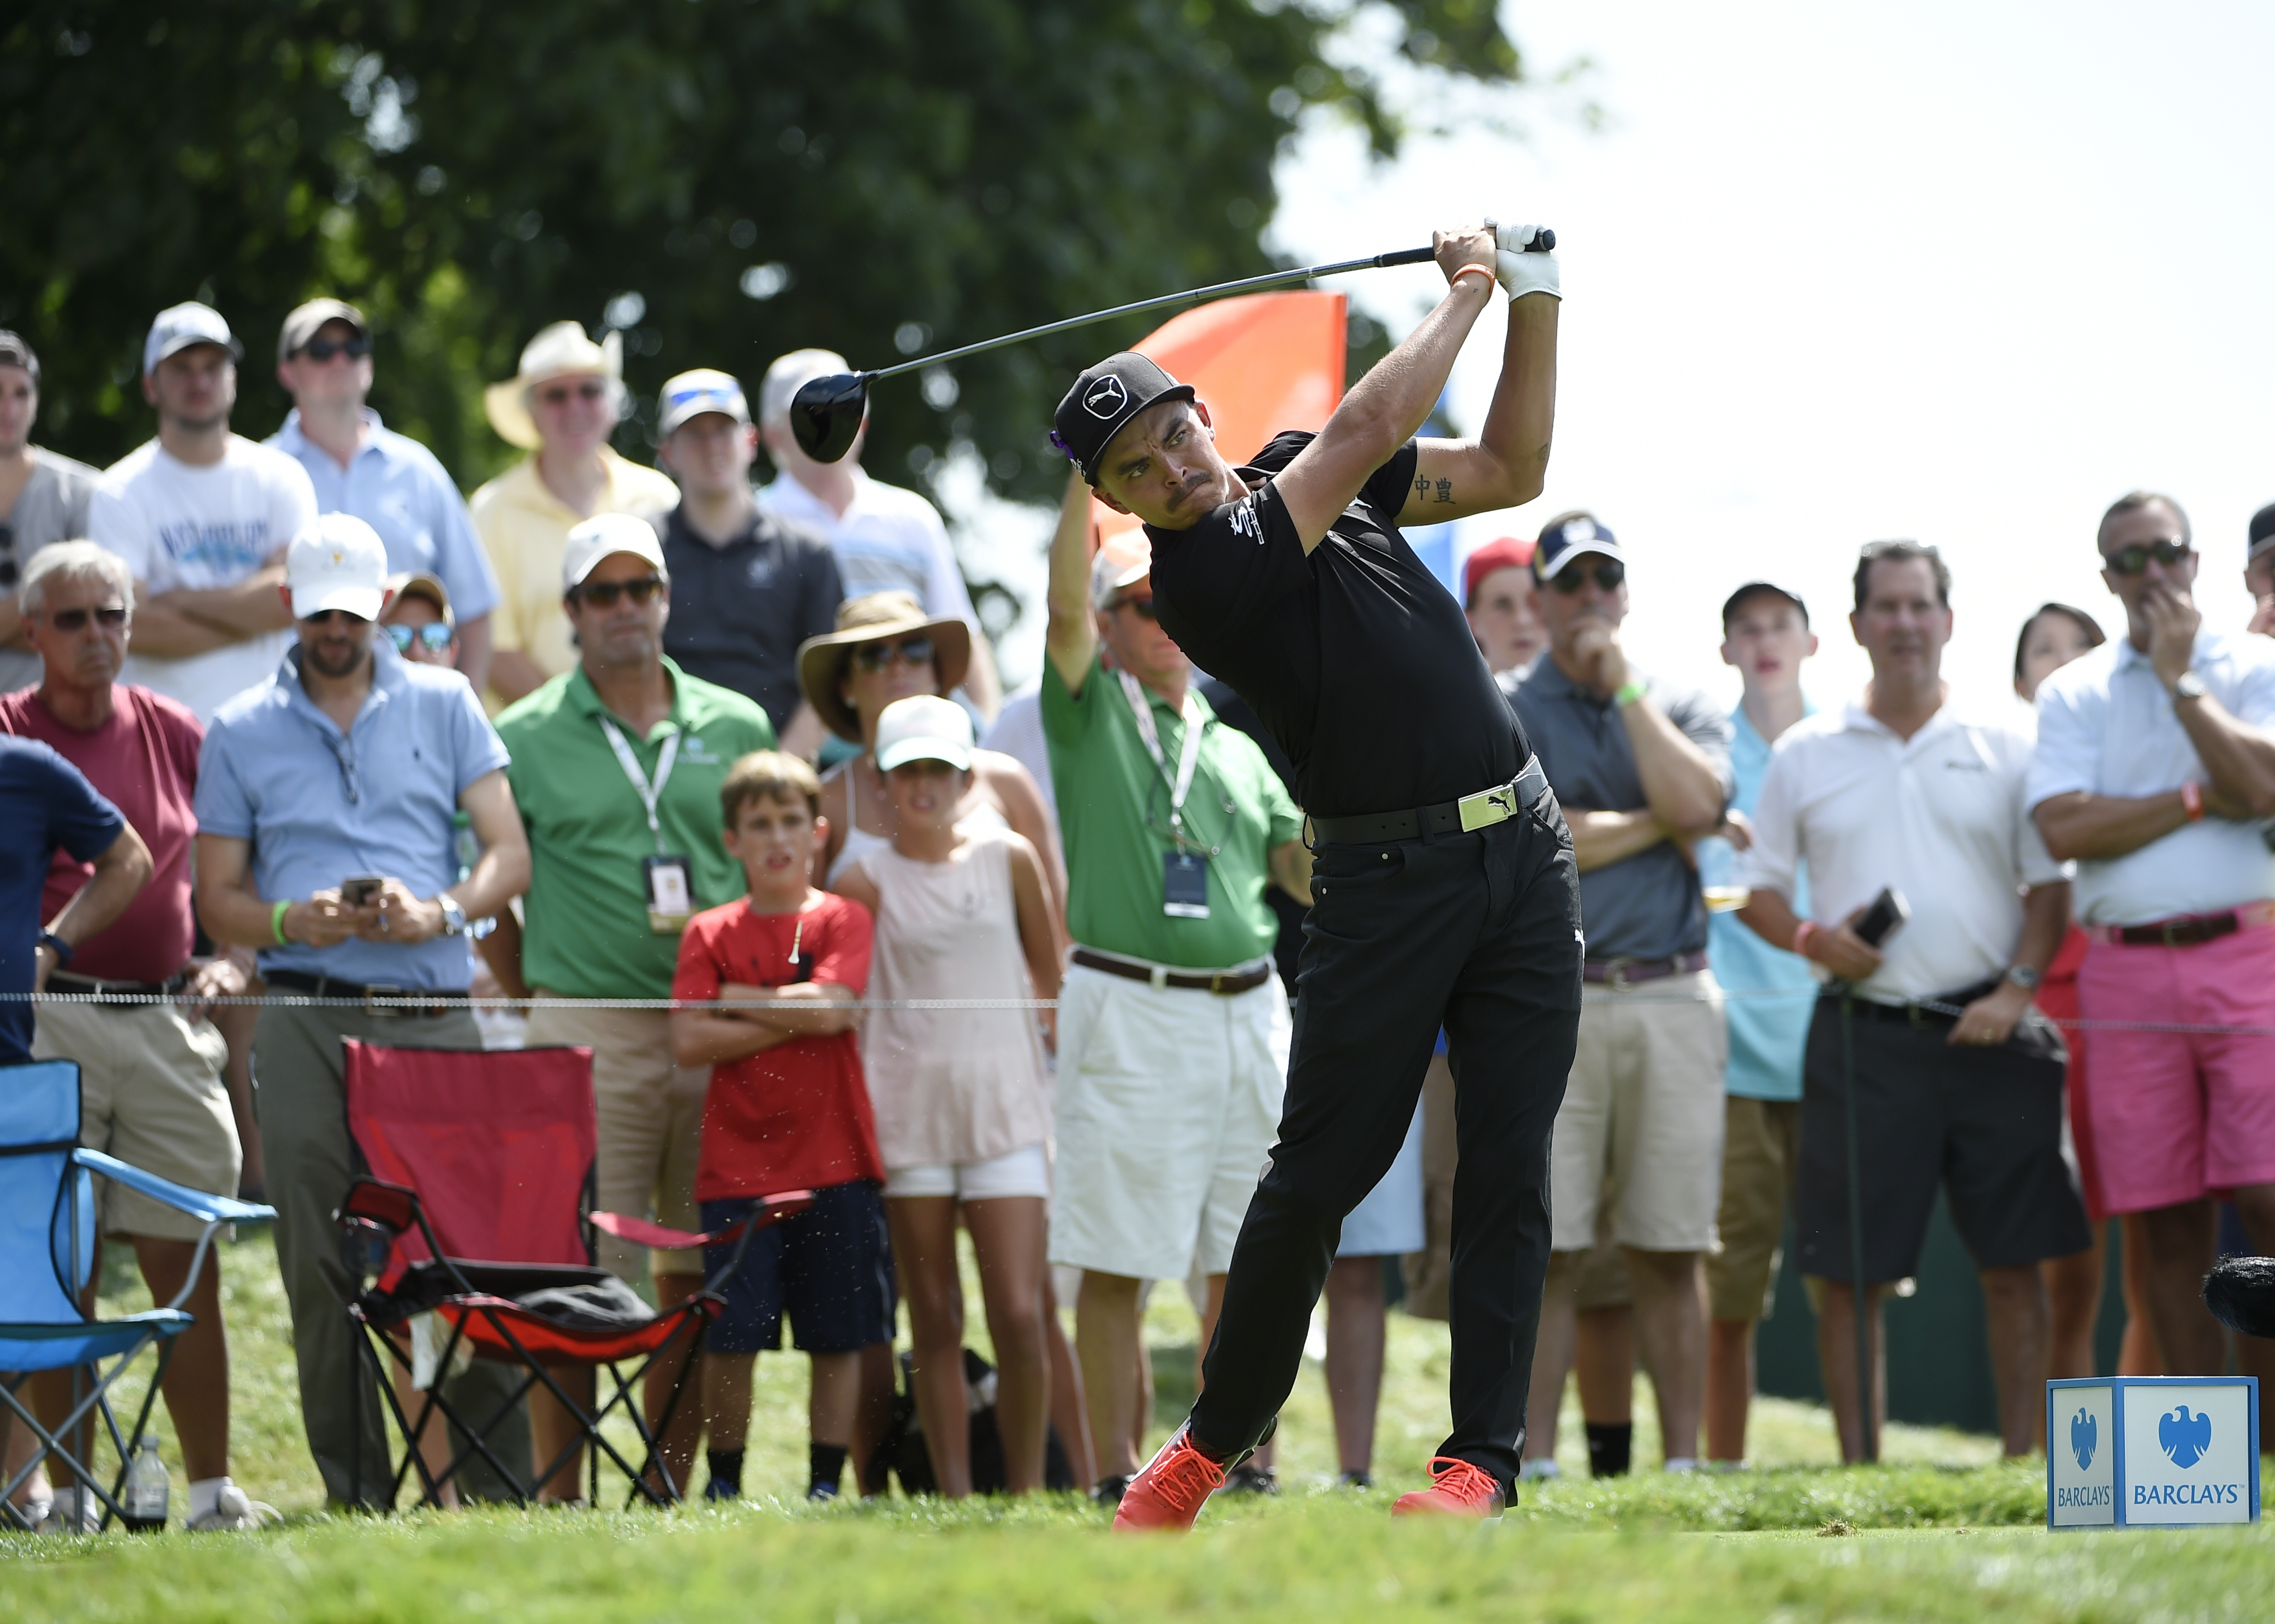 Spectators watch Rickie Fowler tee off from the 17th hole during the second round of The Barclays golf tournament in Farmingdale, N.Y., Friday, Aug. 26, 2016, (AP Photo/Kathy Kmonicek)